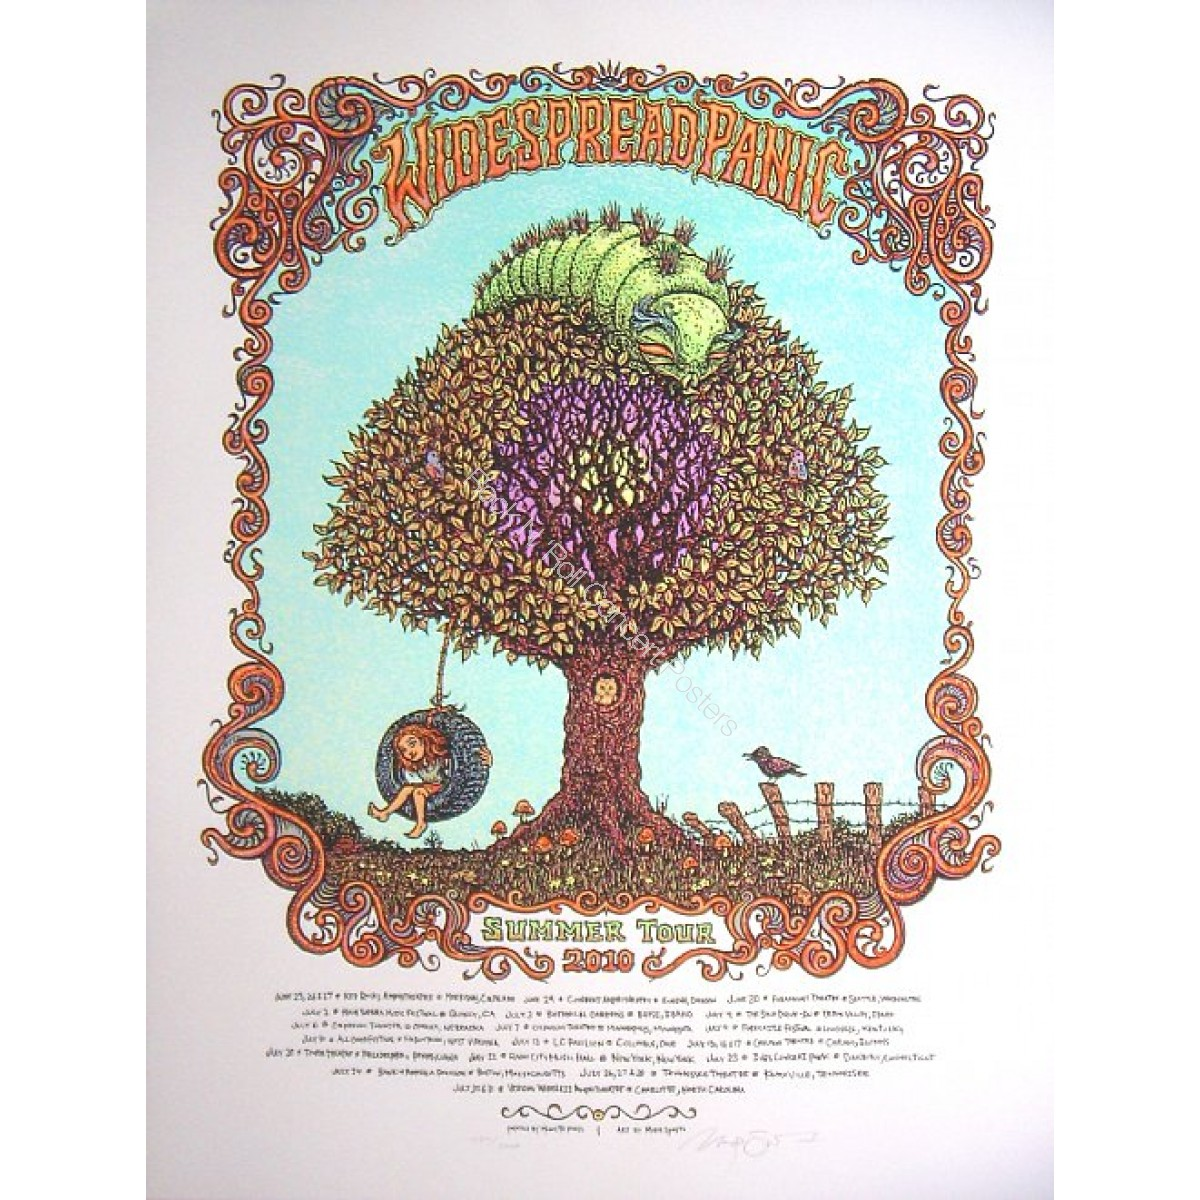 Widespread Panic Summer Tour 2010 1st Edition by Marq Spusta